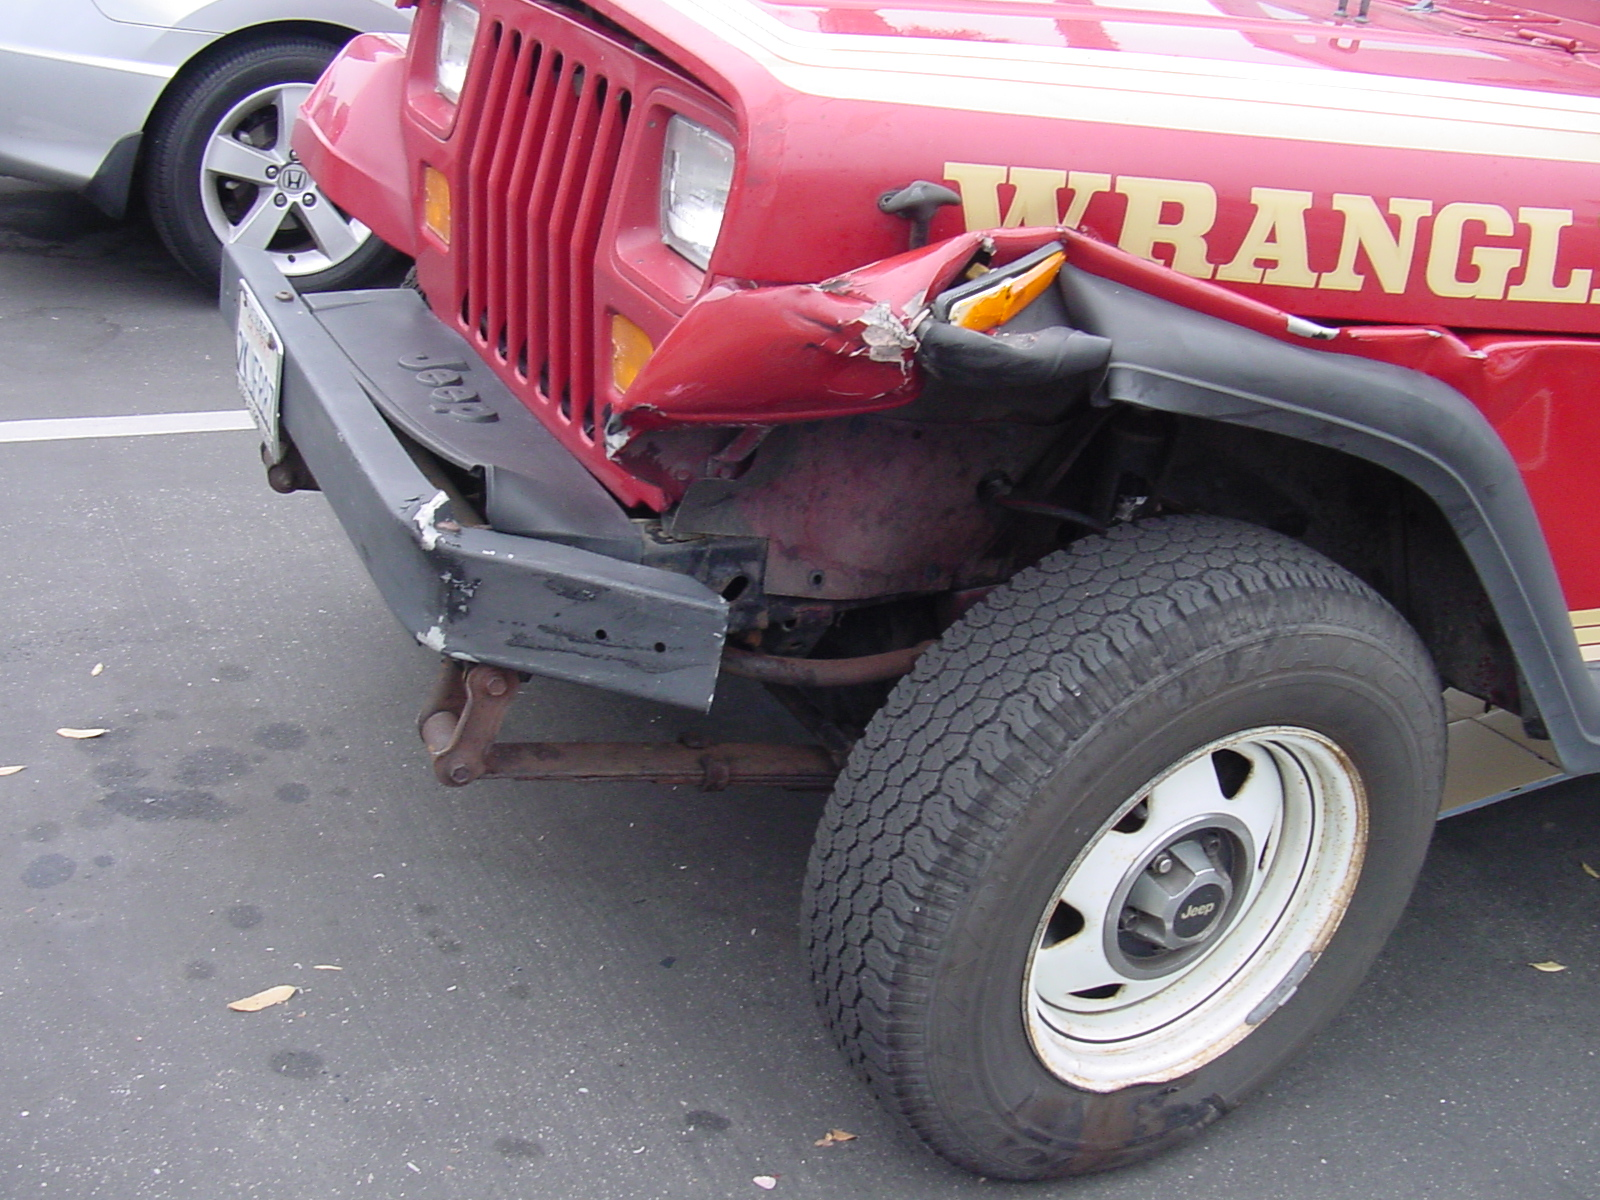 The Jeep after crash